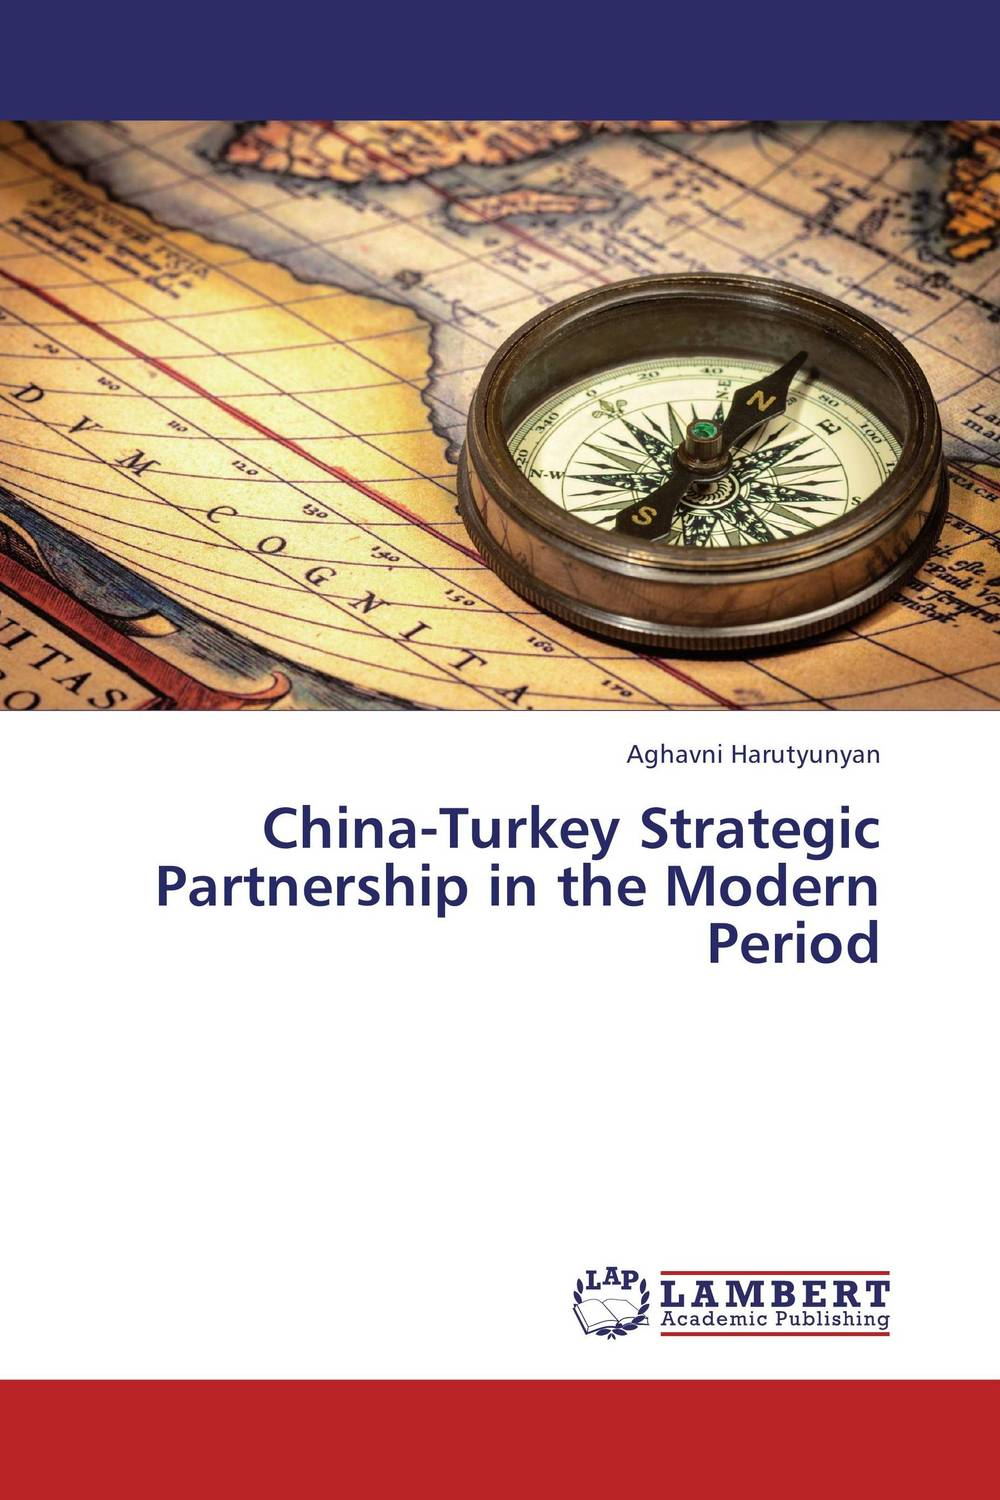 China-Turkey Strategic Partnership in the Modern Period heroin organized crime and the making of modern turkey